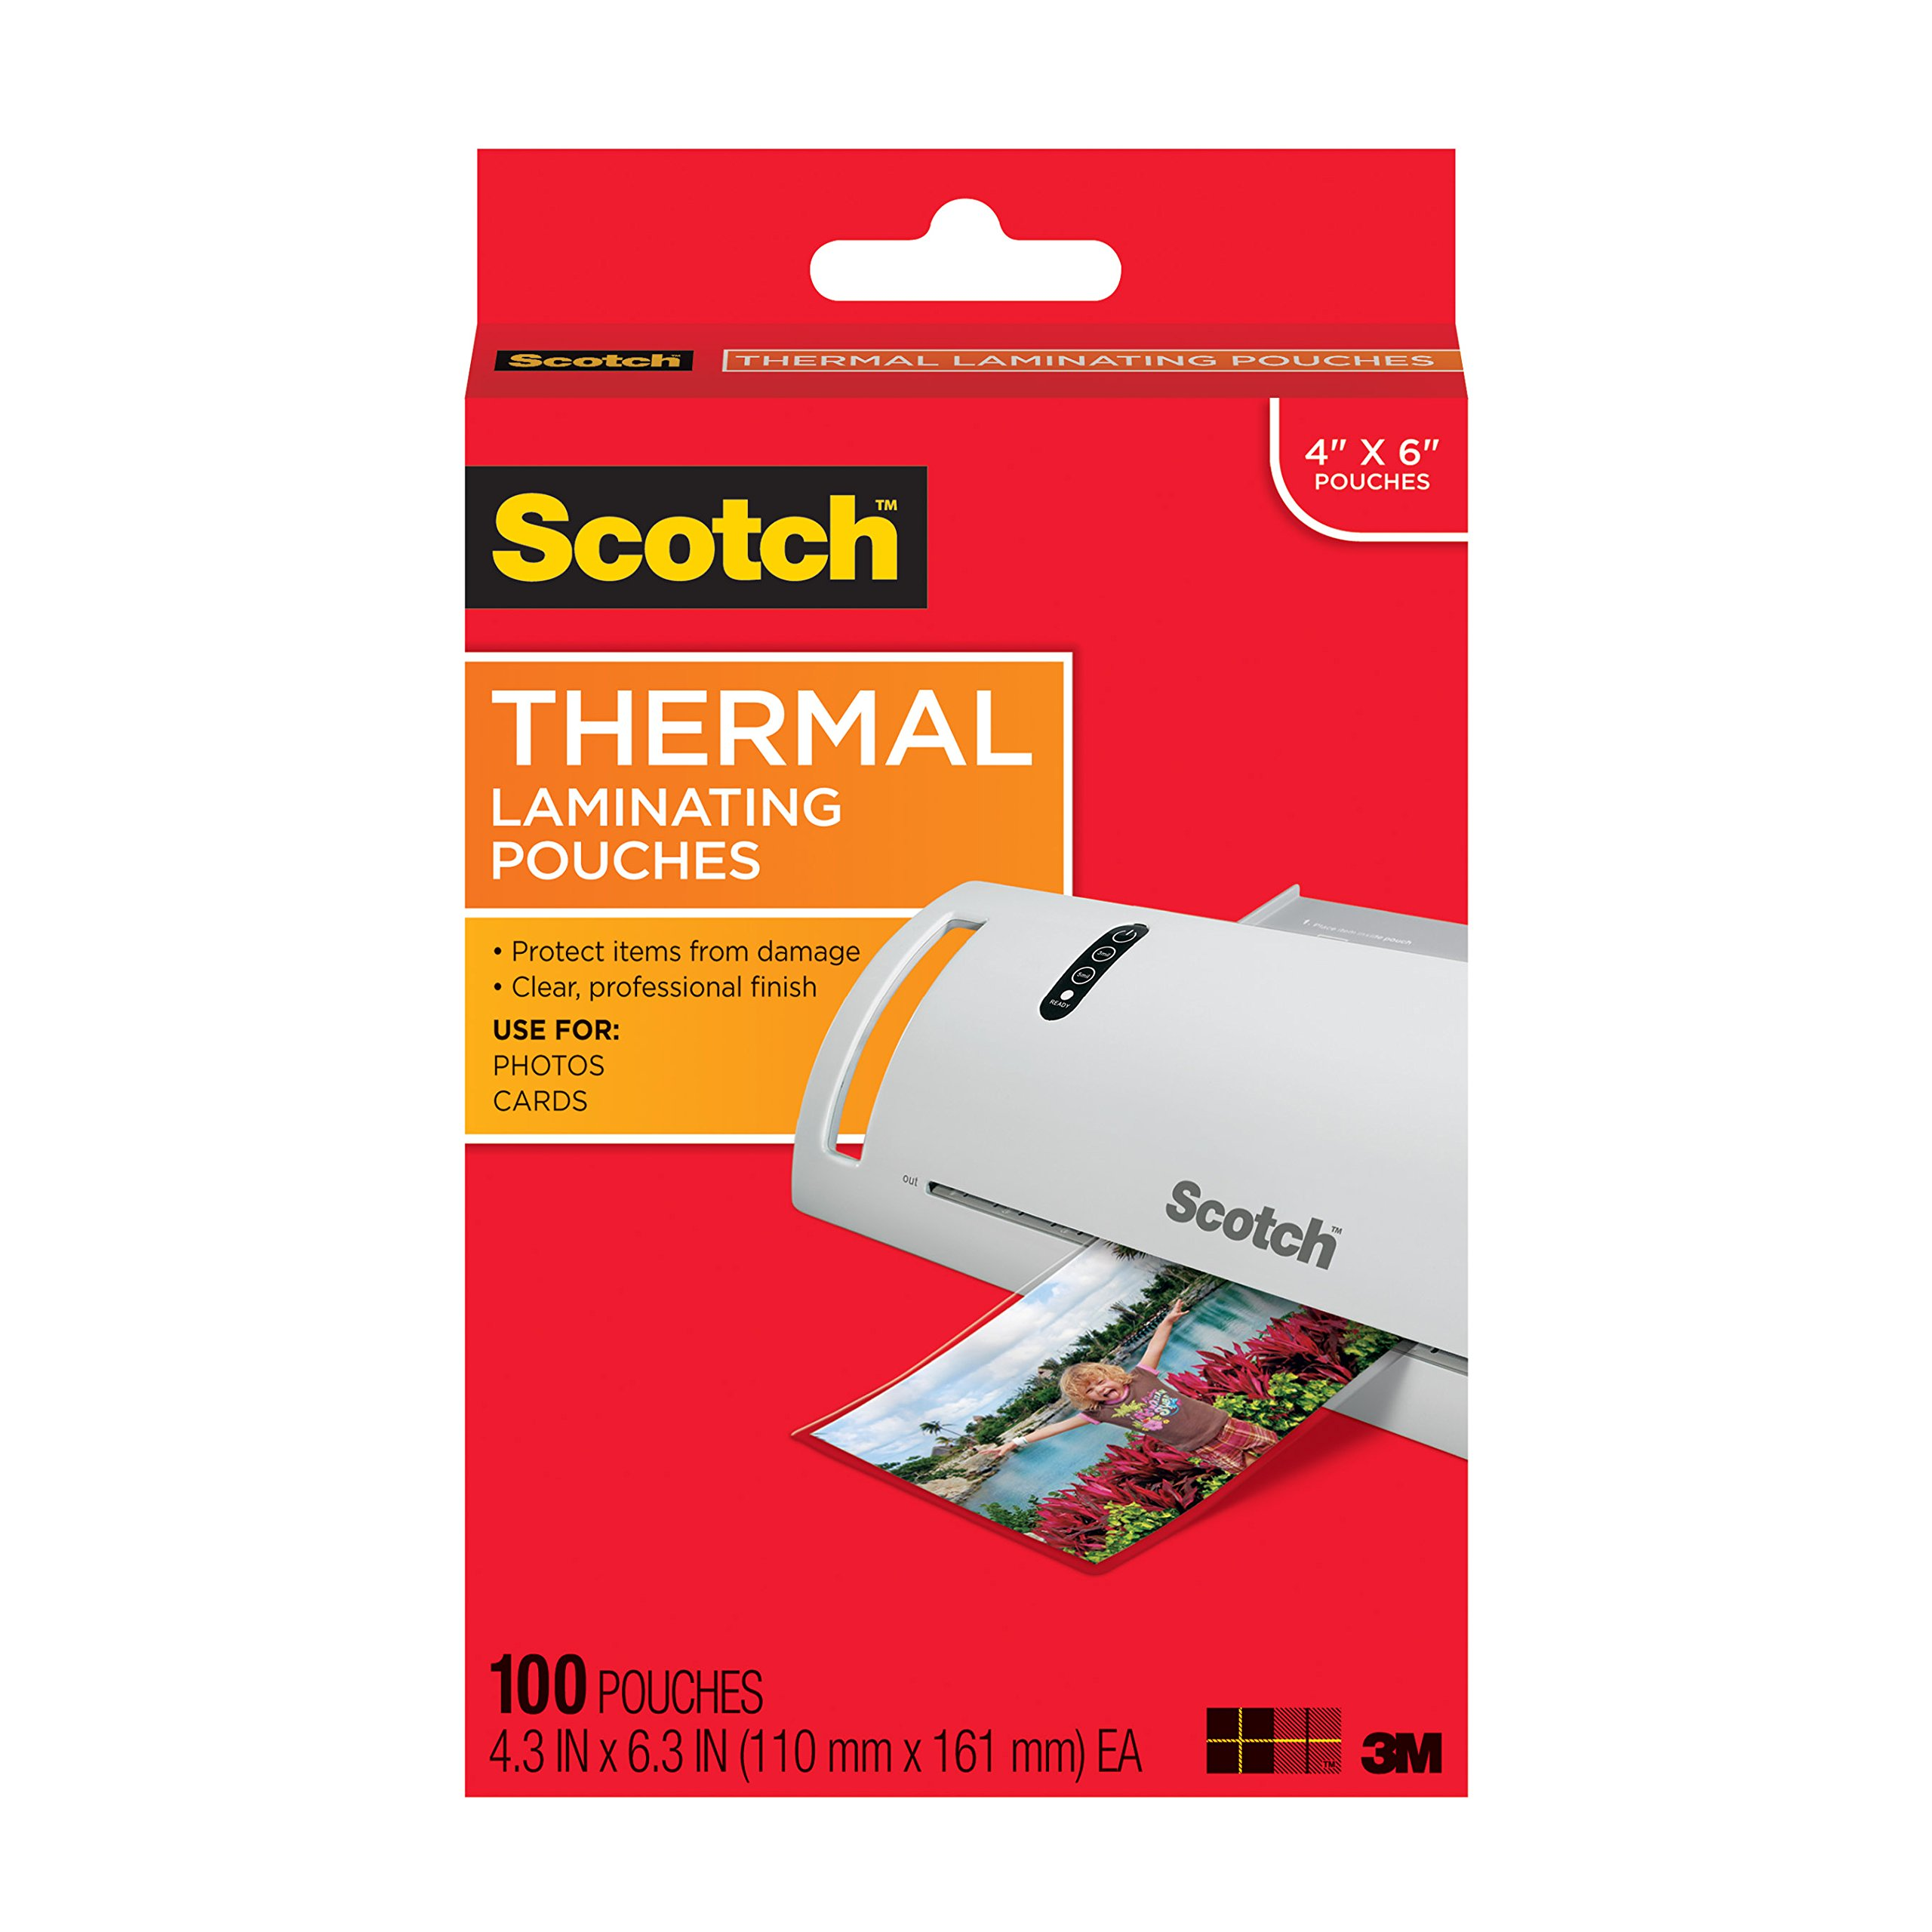 Scotch Thermal Laminating Pouches, 4.3 Inches x 6.3 Inches, 100 Pouches (TP5900-100) by 3M